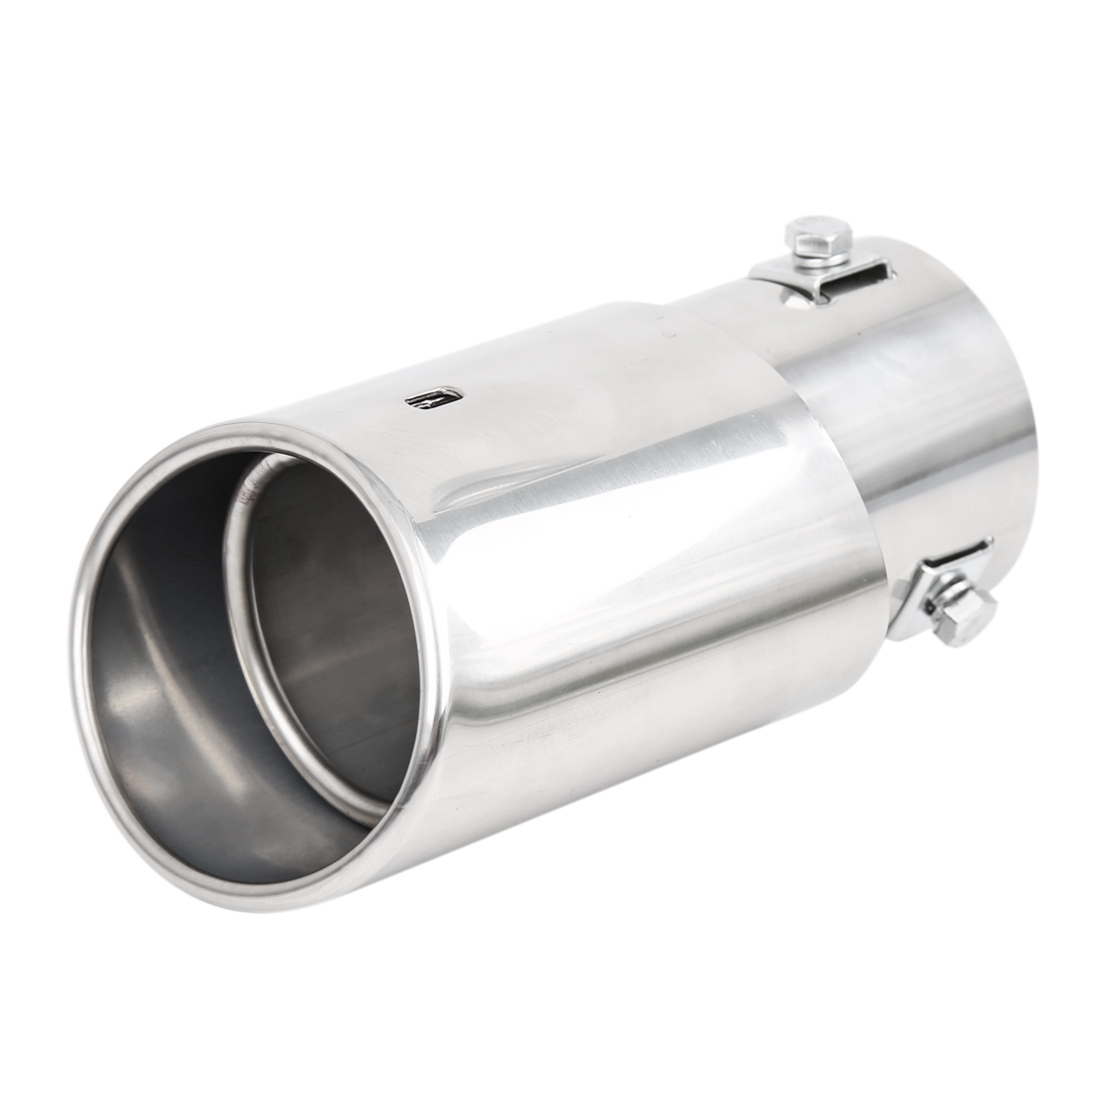 "Universal Fits Car Stainless Steel Chrome Exhaust Rear Tail Muffler Tip Pipe Fit Diameter 1 1/4"" to 2"""